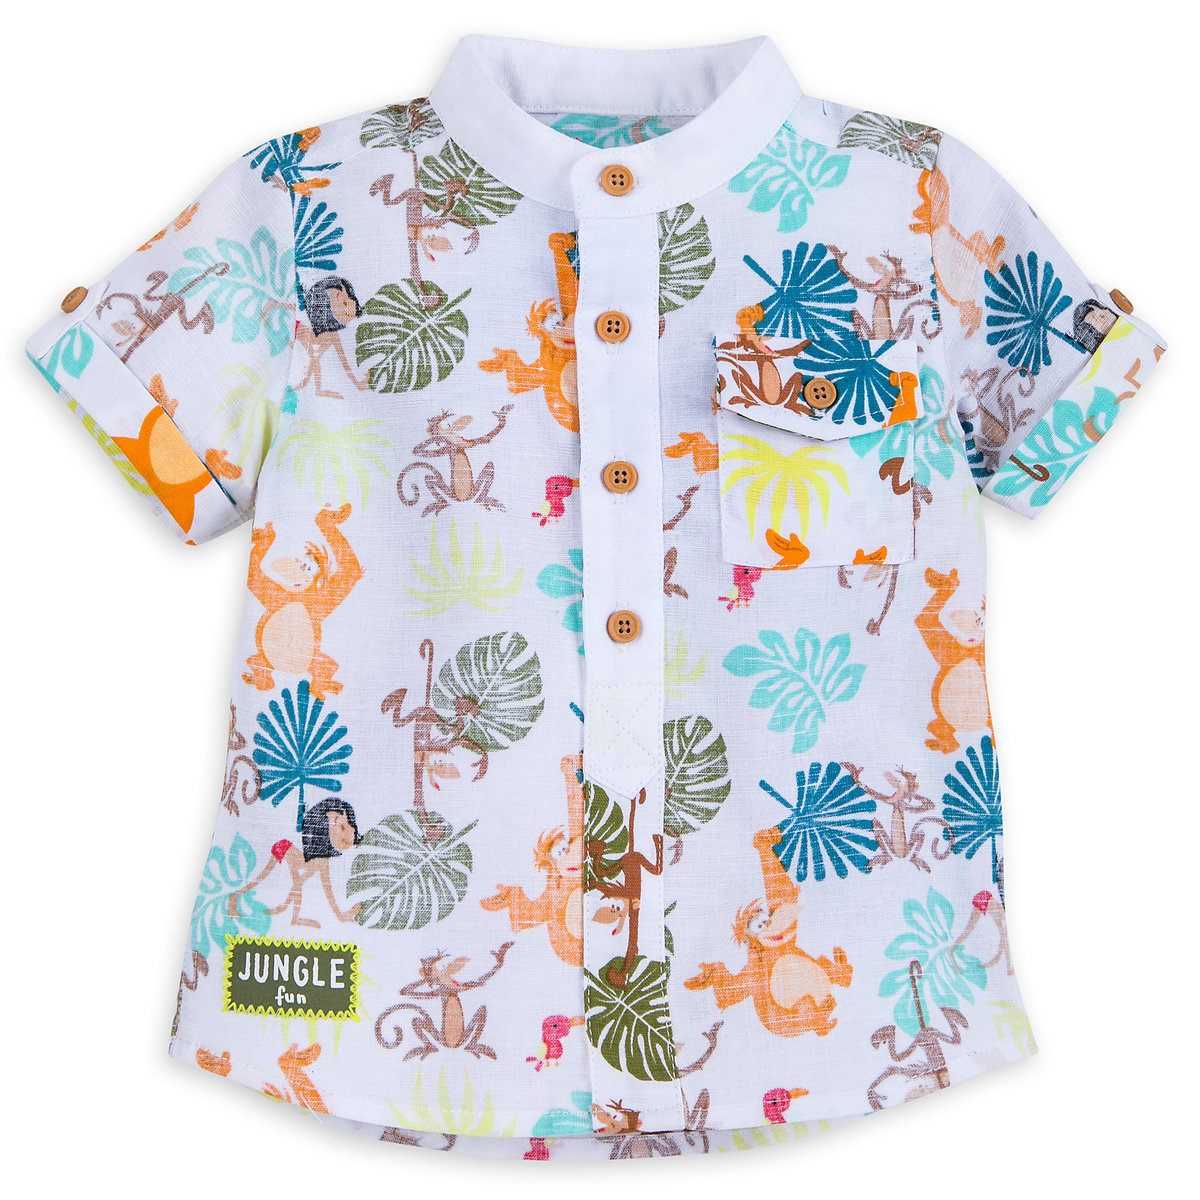 The Jungle Book Woven Shirt For Baby Shopdisney